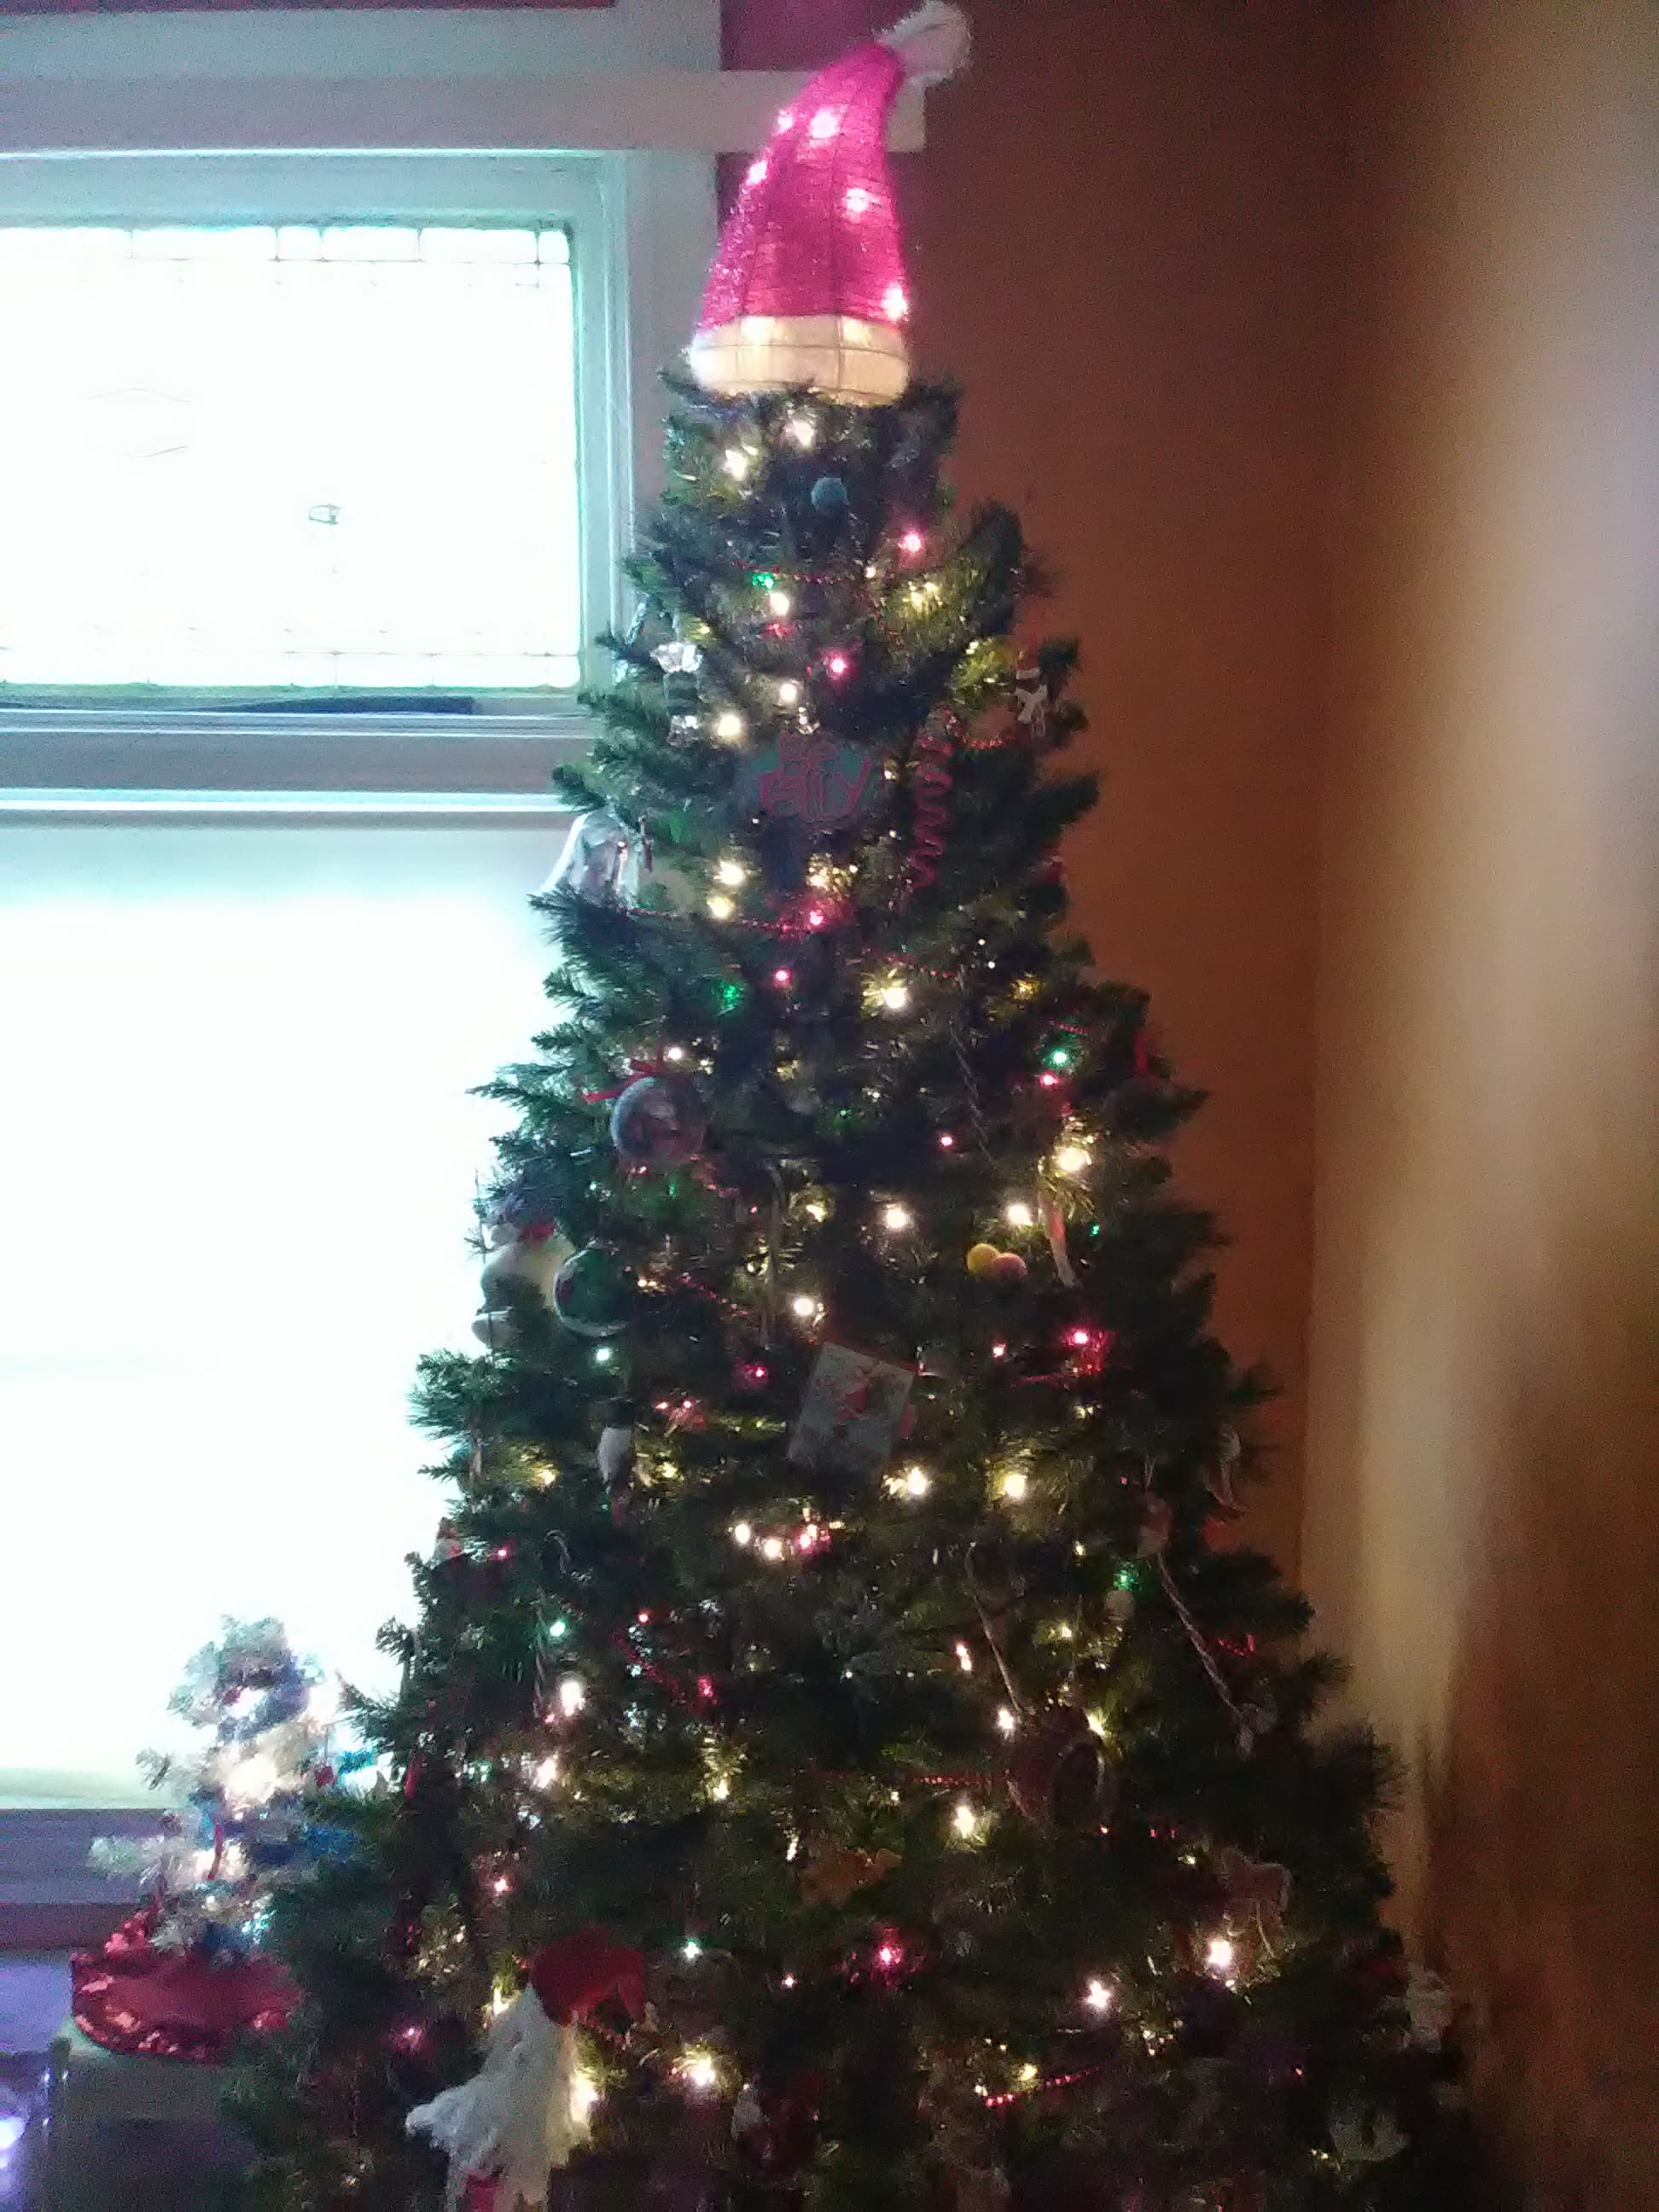 Photo Credit: I snapped and owned this photograph; it's our Christmas tree this year.